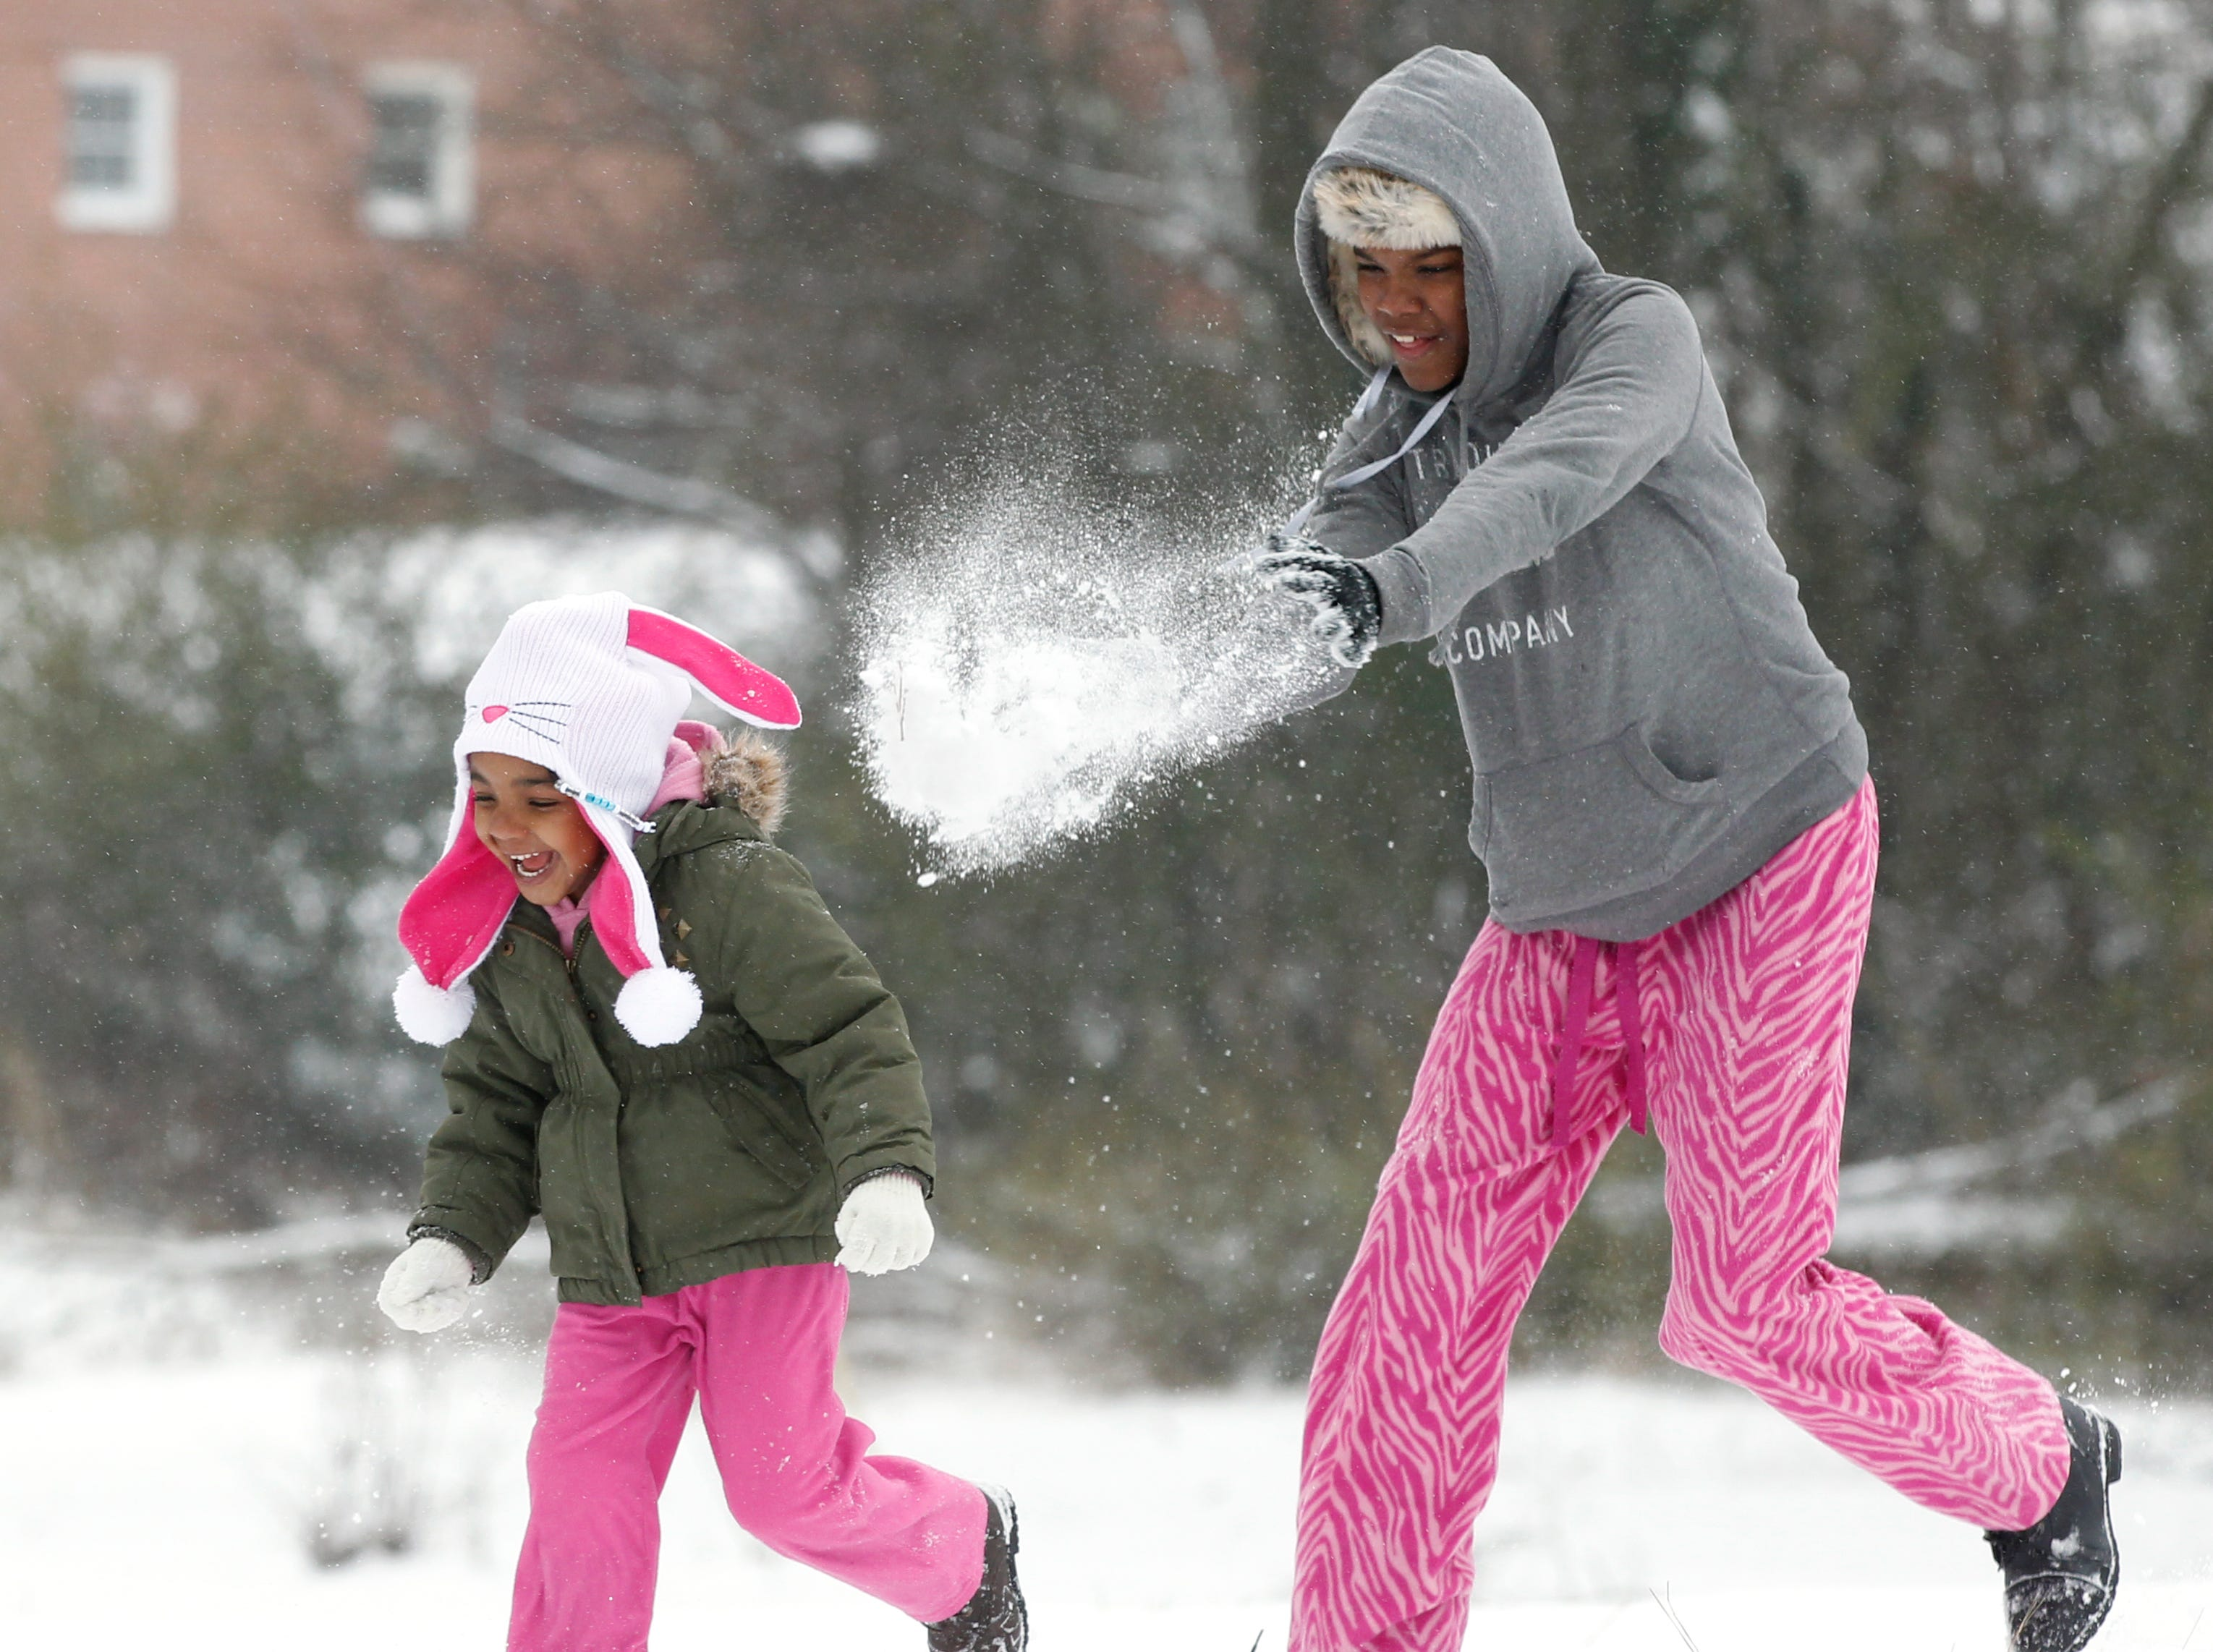 Xyiera Jenkins, right, hits her sister Johnecia Wiley with a snowball in the front yard of their Anderson home on Wednesday February 12, 2014.